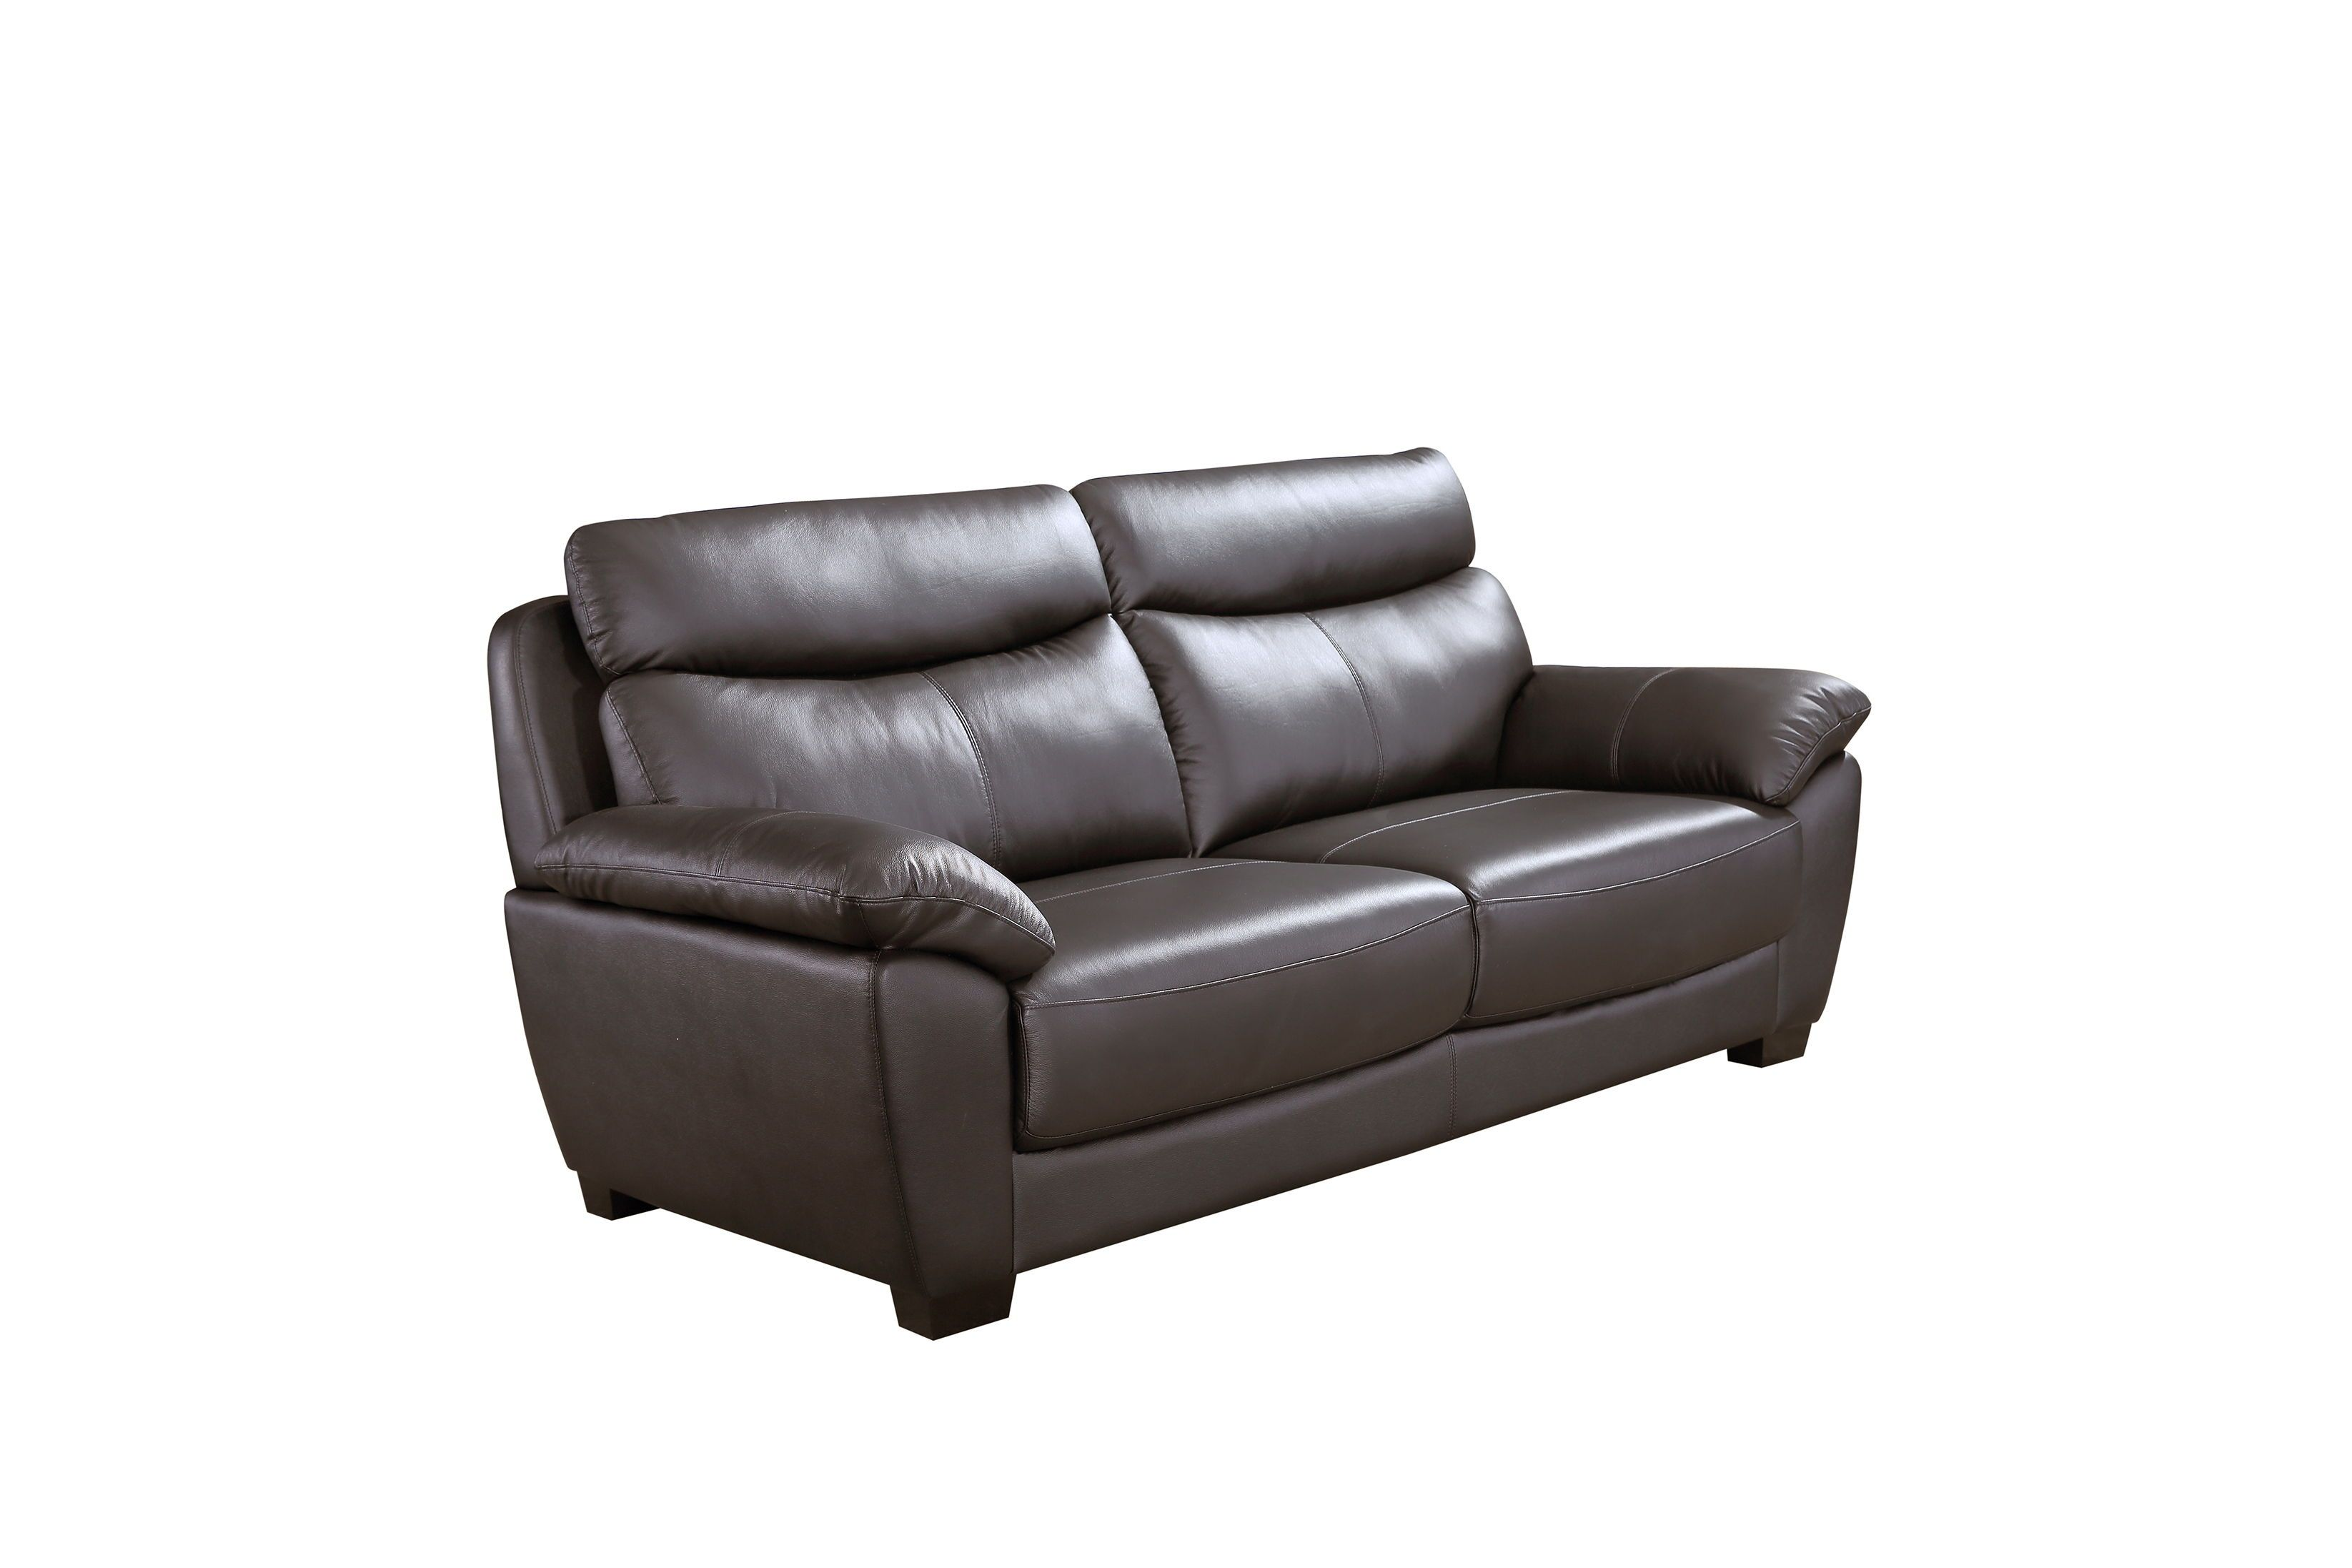 justin ii fabric reclining sectional sofa pomona pin by pallucci furniture on leather sofas pinterest